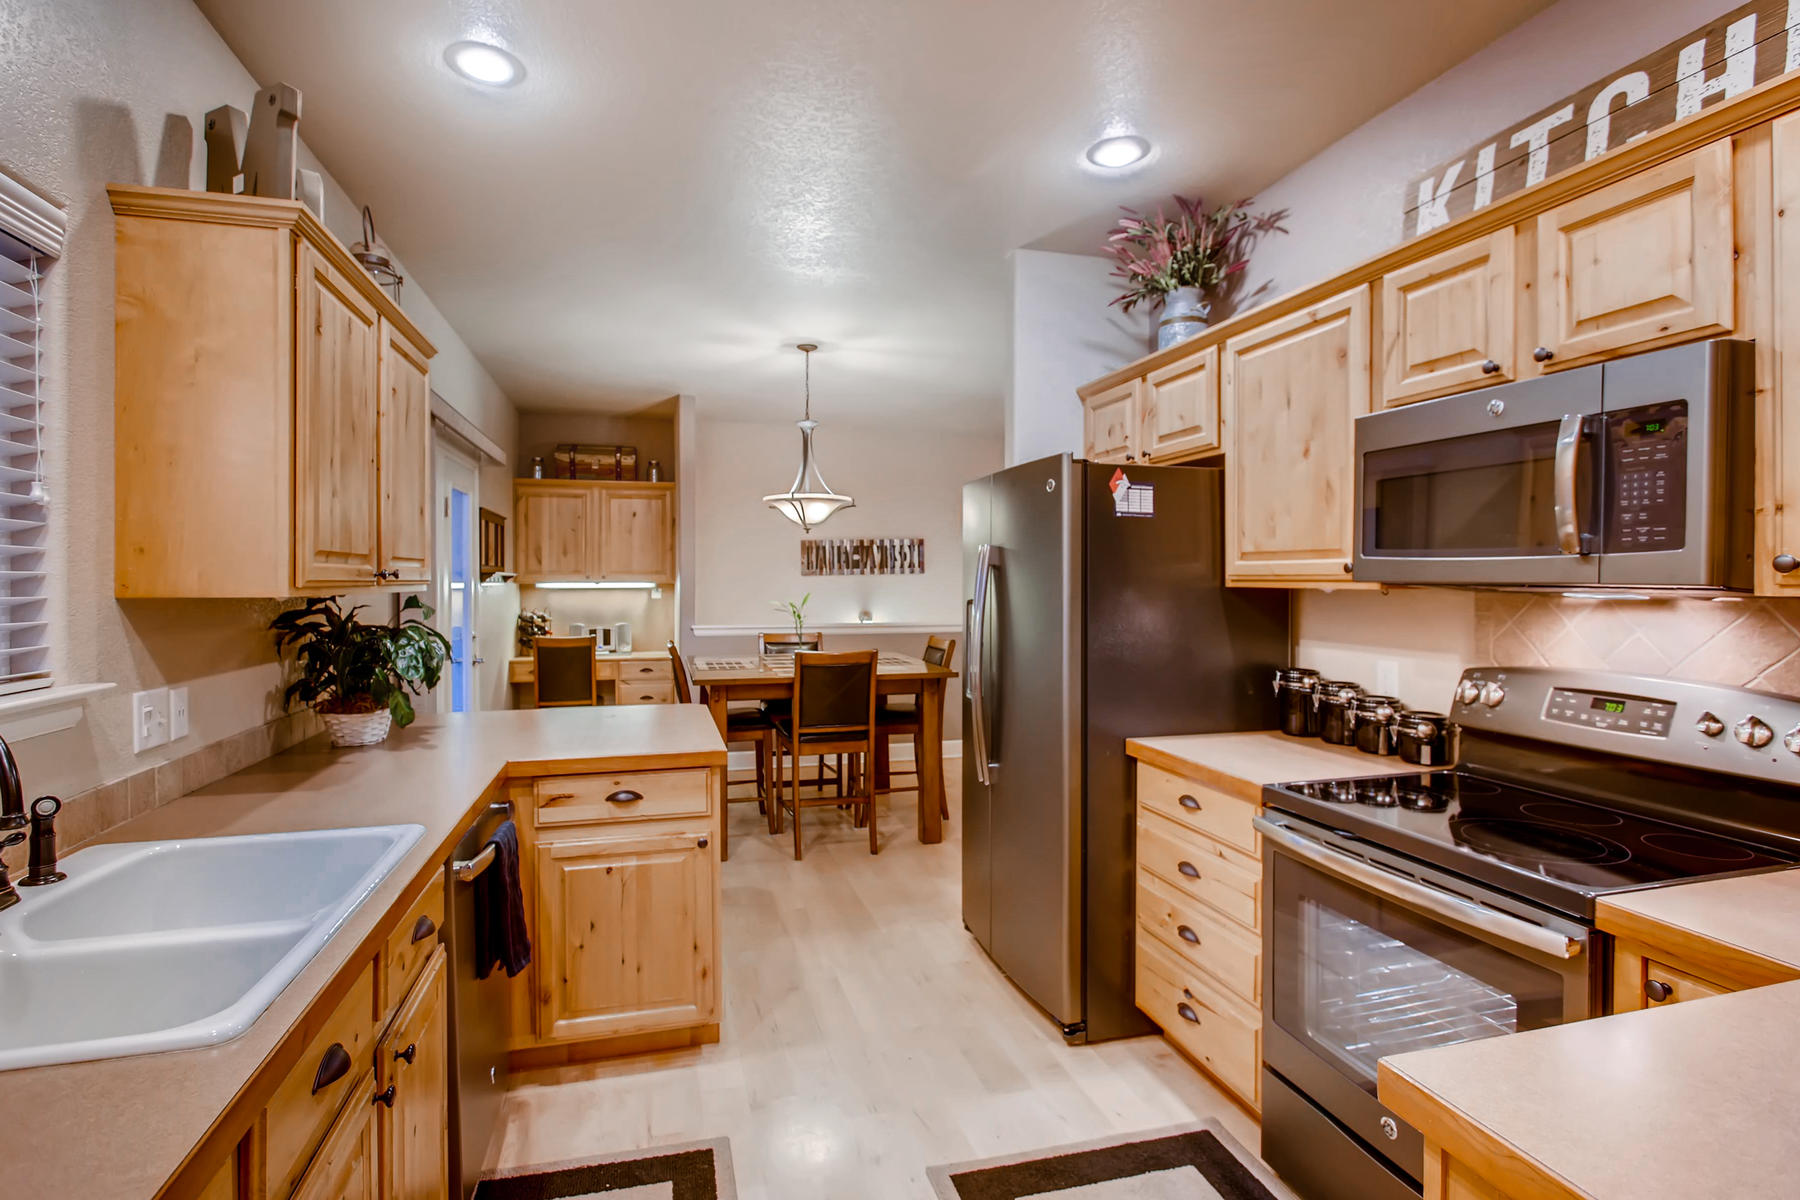 Hickory Cabinets & SS Appliances